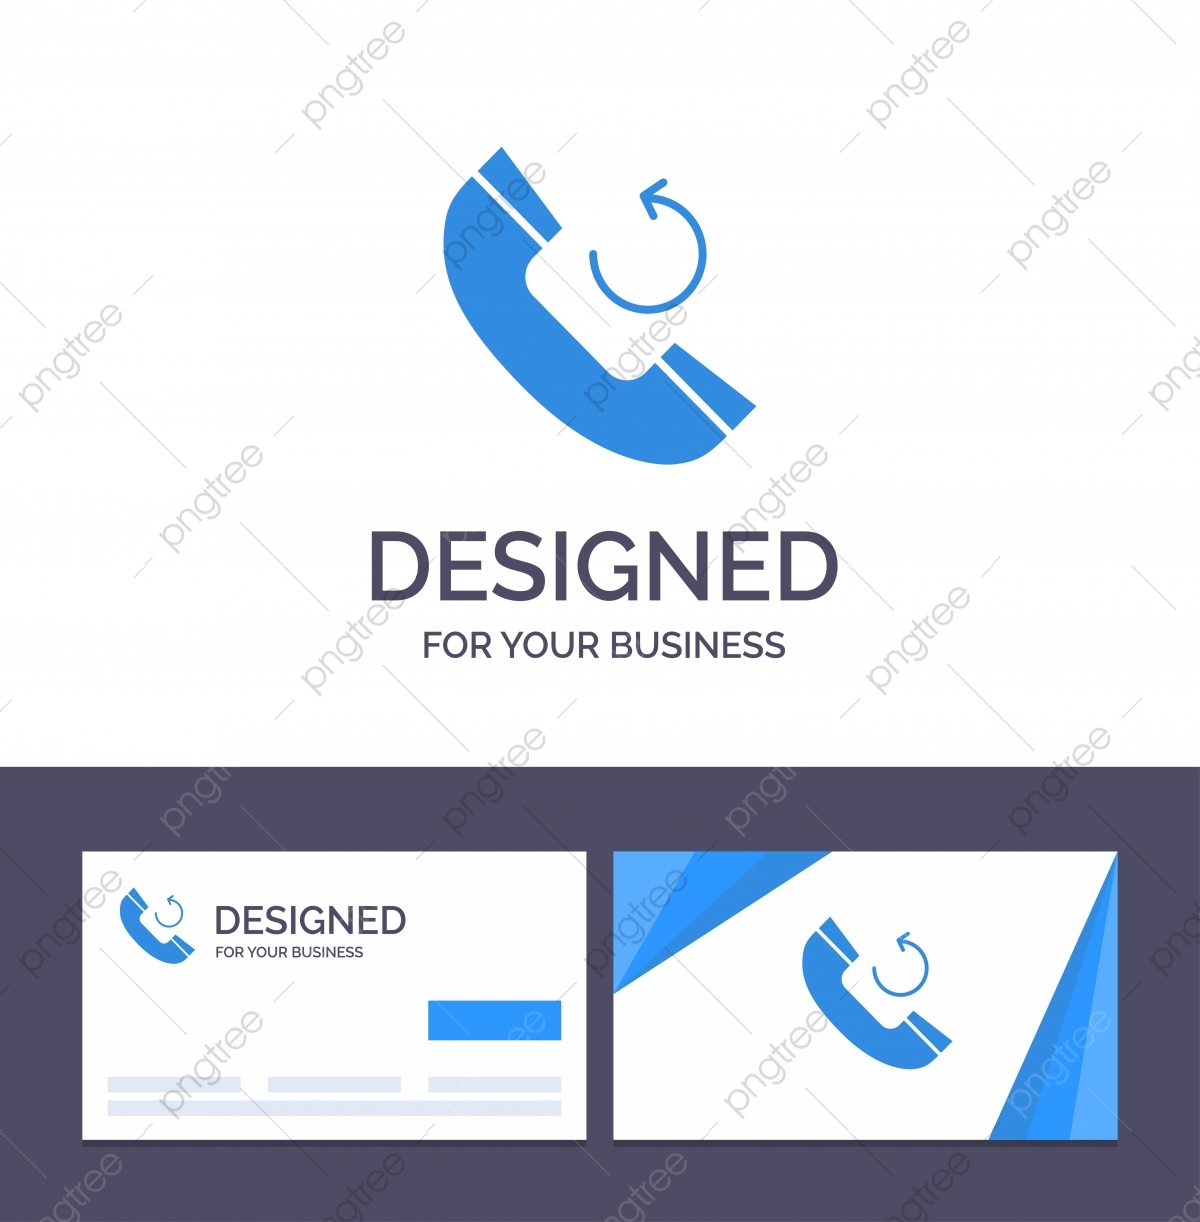 pngtree creative business card and logo template call phone callback v png image 4485668